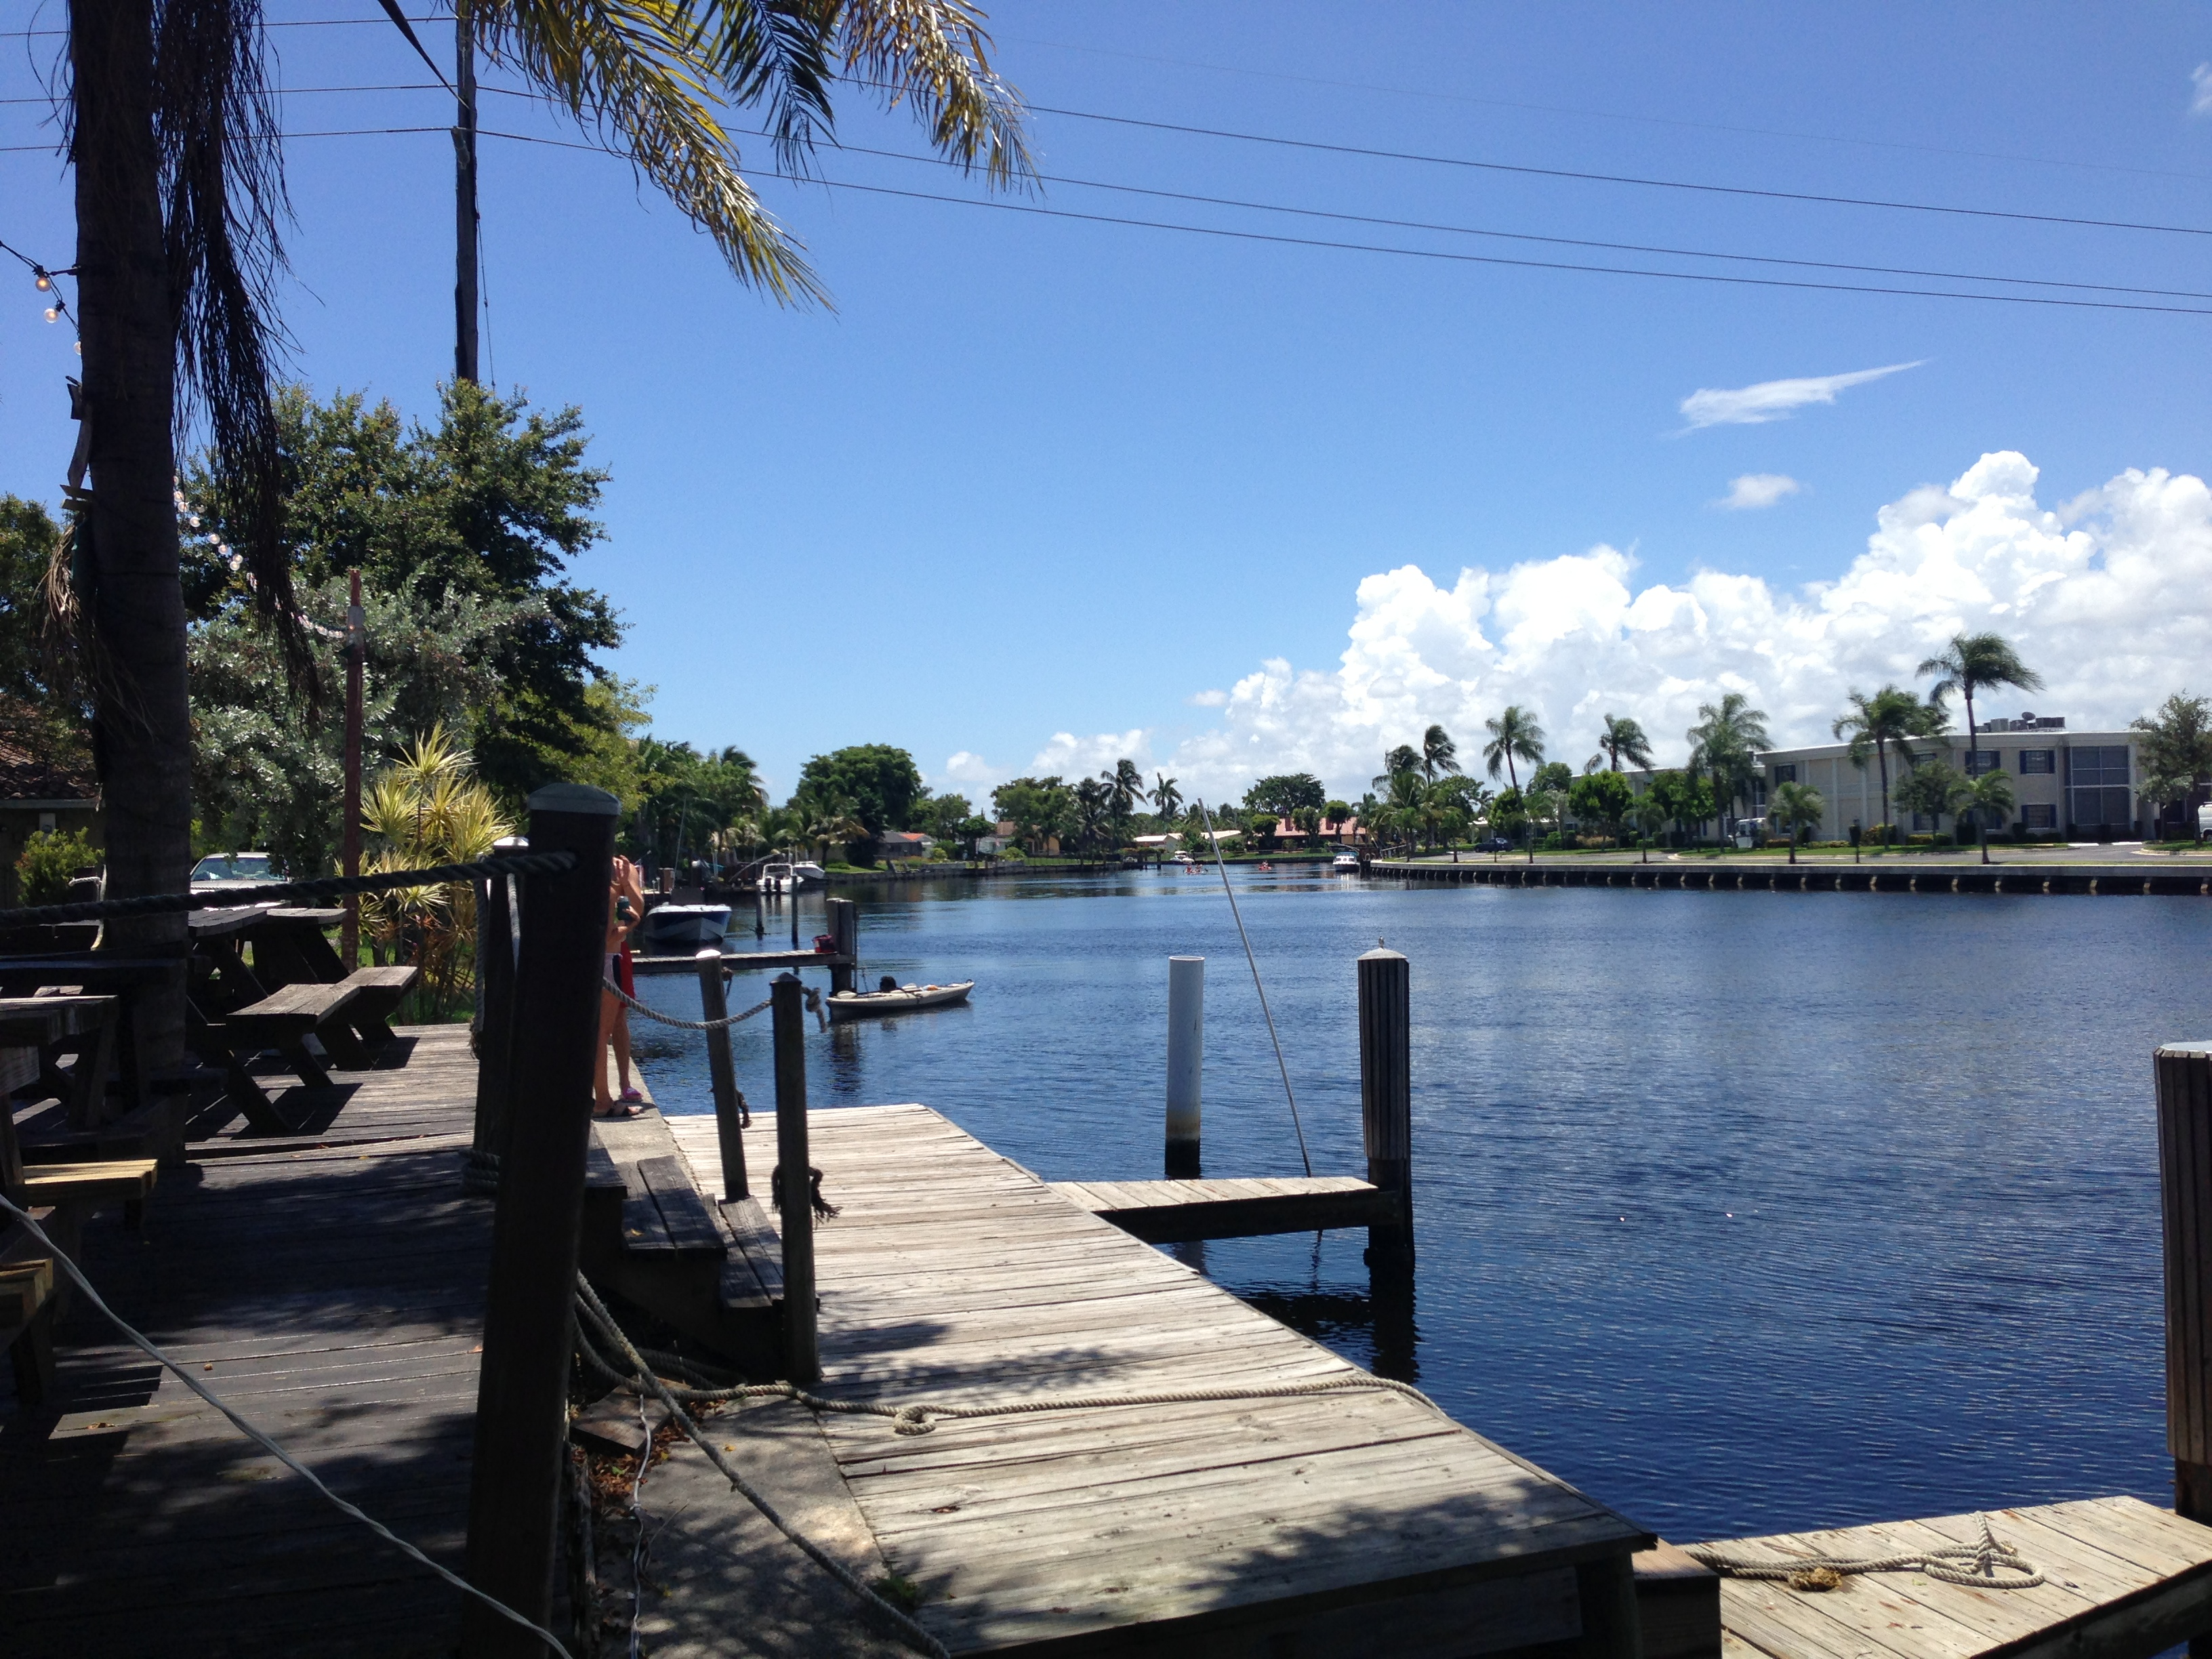 Waterfront Restaurant for Sale with Tiki Bar, Dock, Outdoor Patio